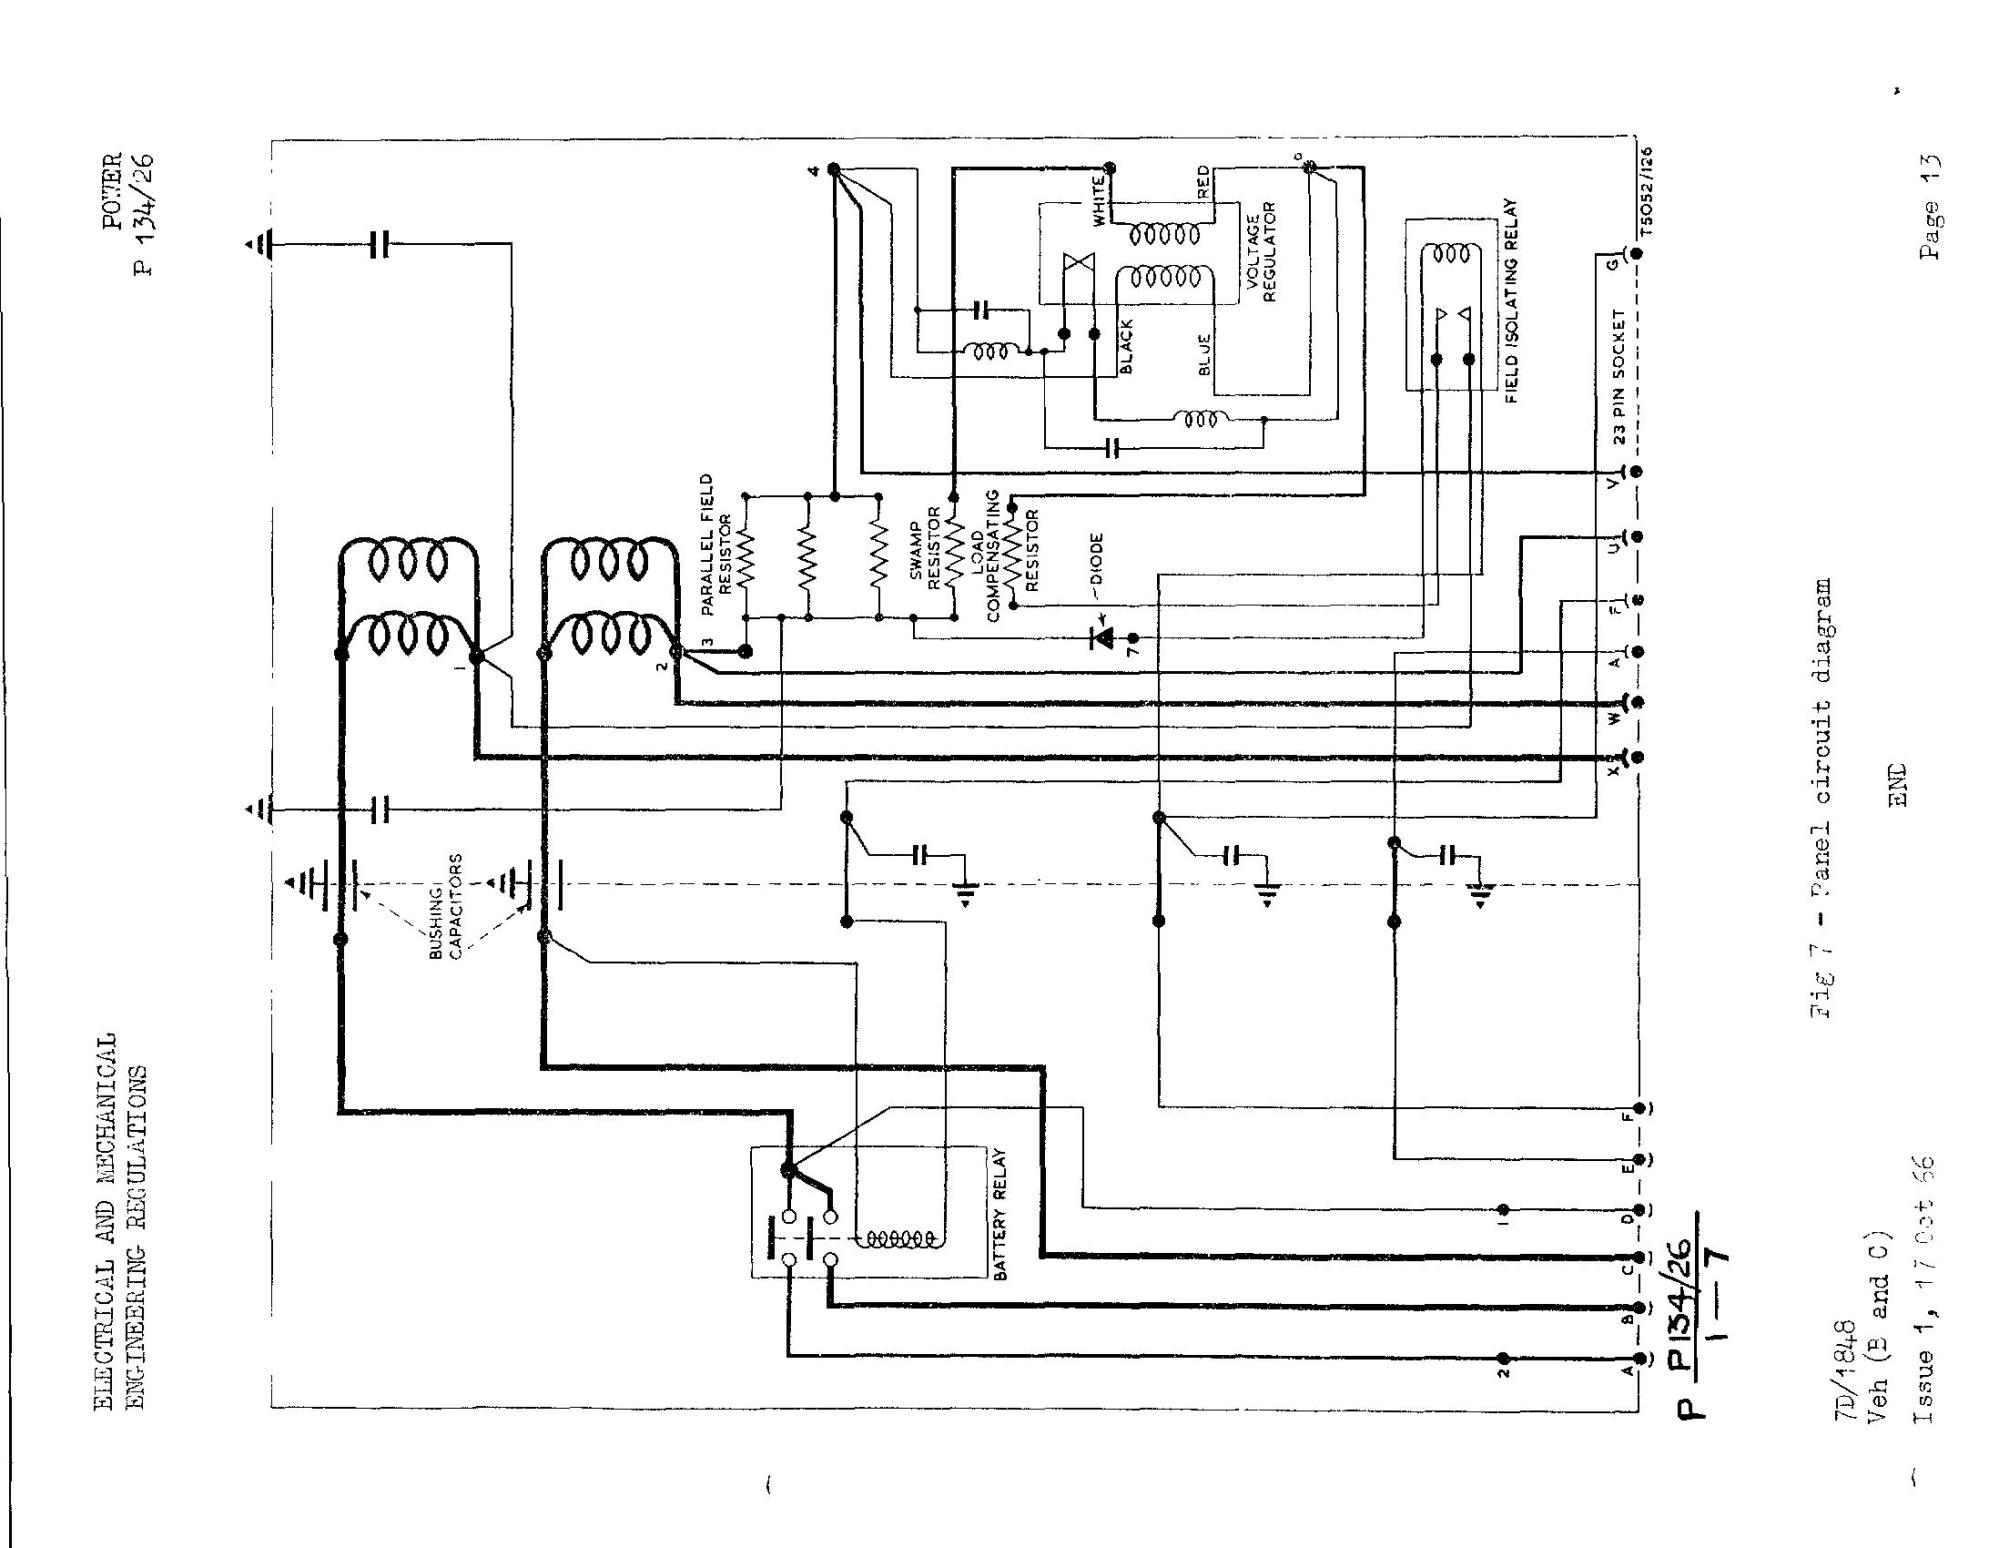 hight resolution of jeep cj7 fuel gauge wiring diagram schematic